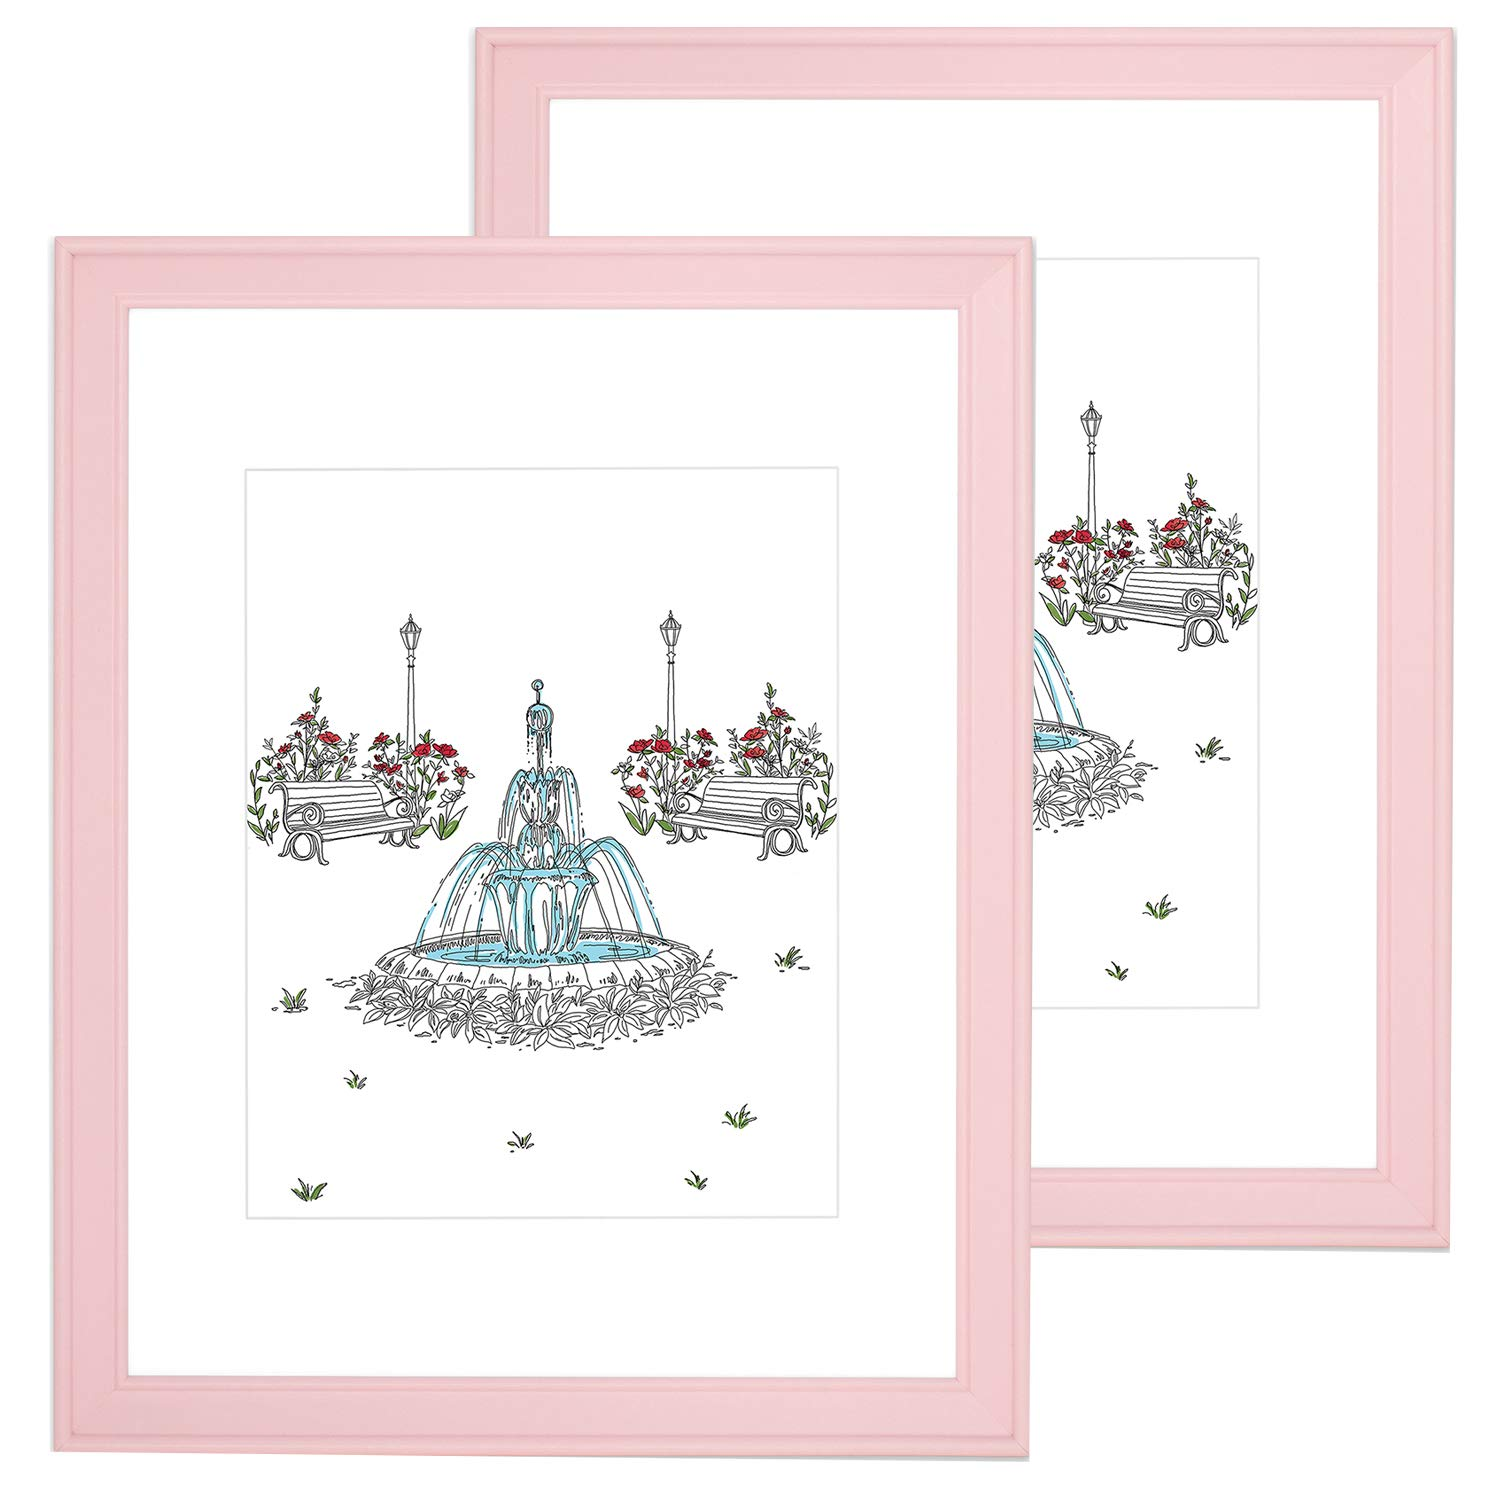 EDGEWOOD 2-Pack Wood Real Glass Flat Picture Frame Matted to 5x7 Matted to for Wall or Tabletop Photo, 8x10, Blush Pink